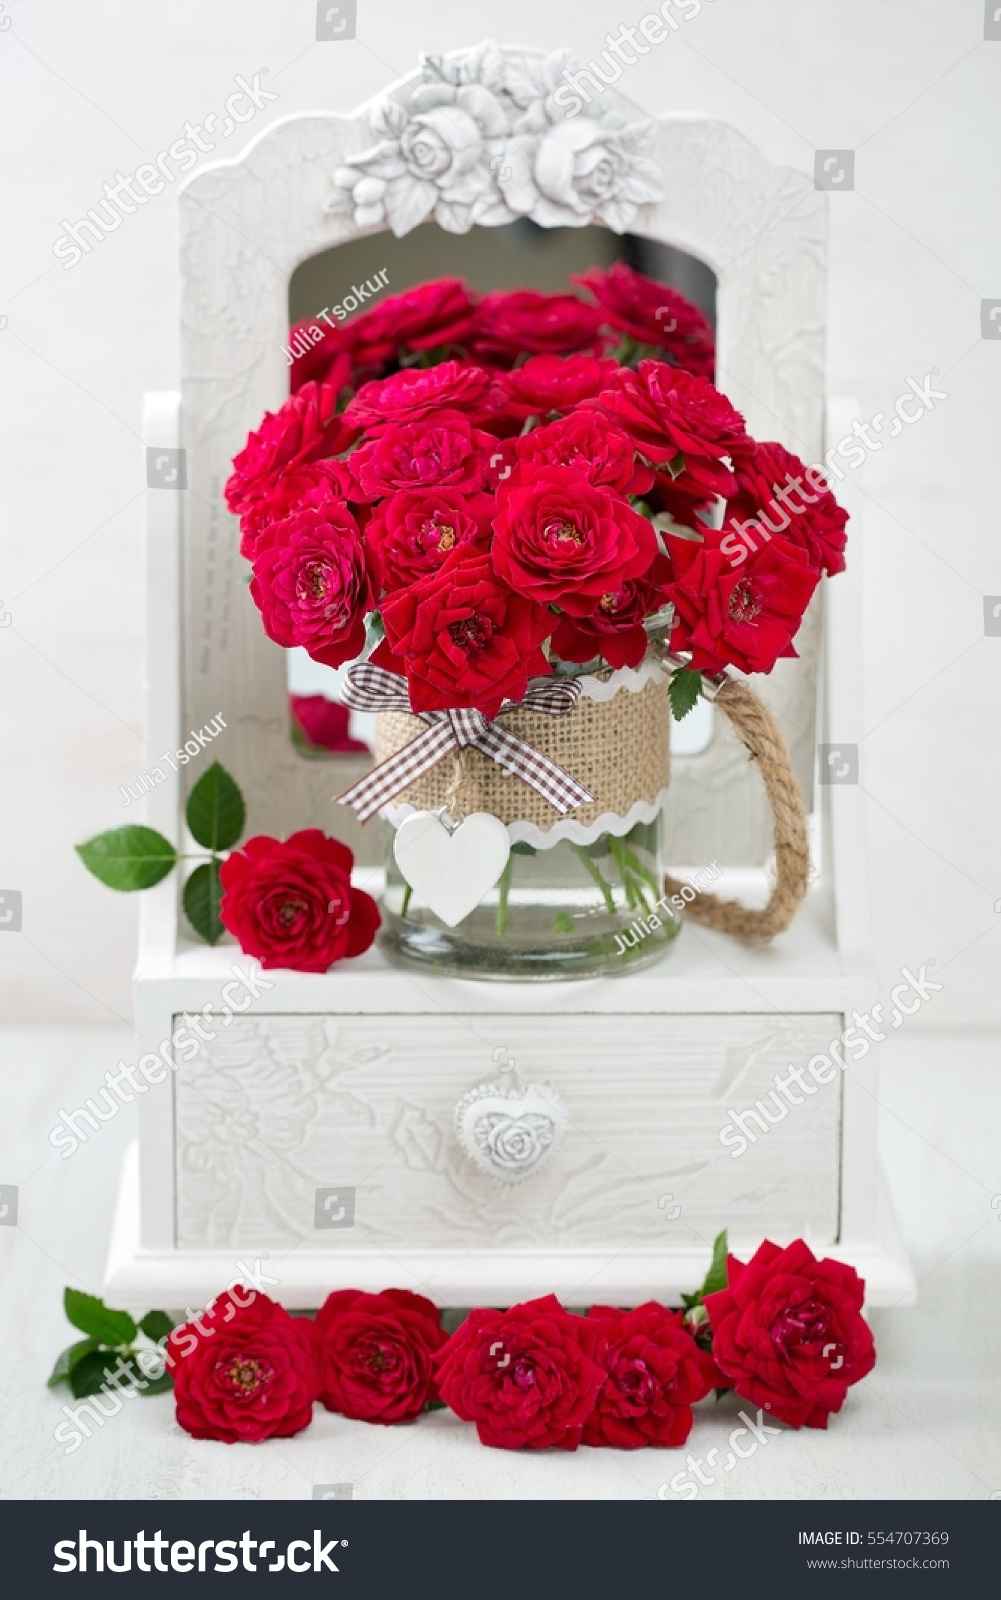 Beautiful red roses lovely bunch flowers stock photo royalty free beautiful red roses lovely bunch of flowers autiful fresh roses in a vase decorated izmirmasajfo